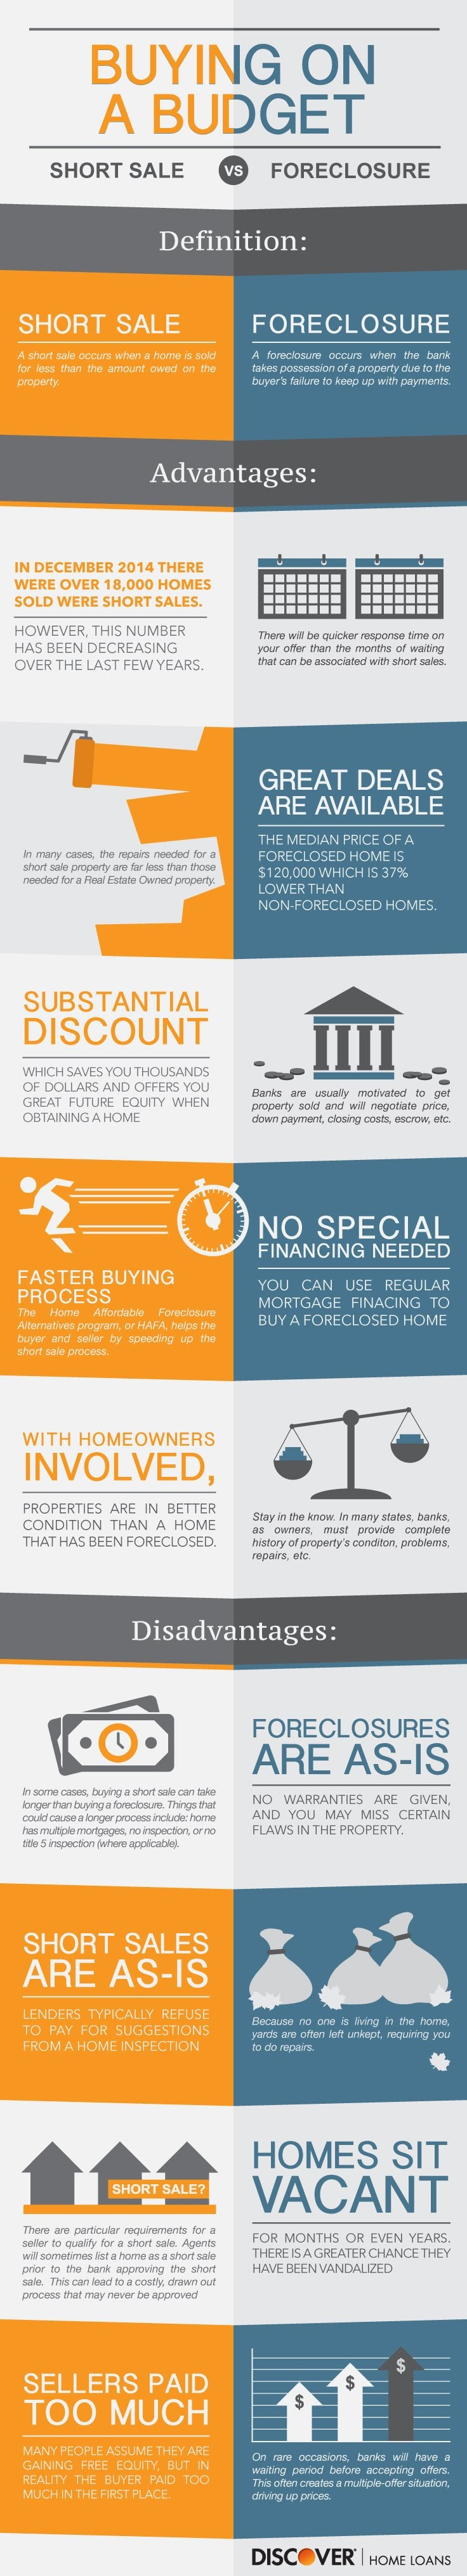 Buying on a Budget: Short Sale vs Foreclosure #infographic